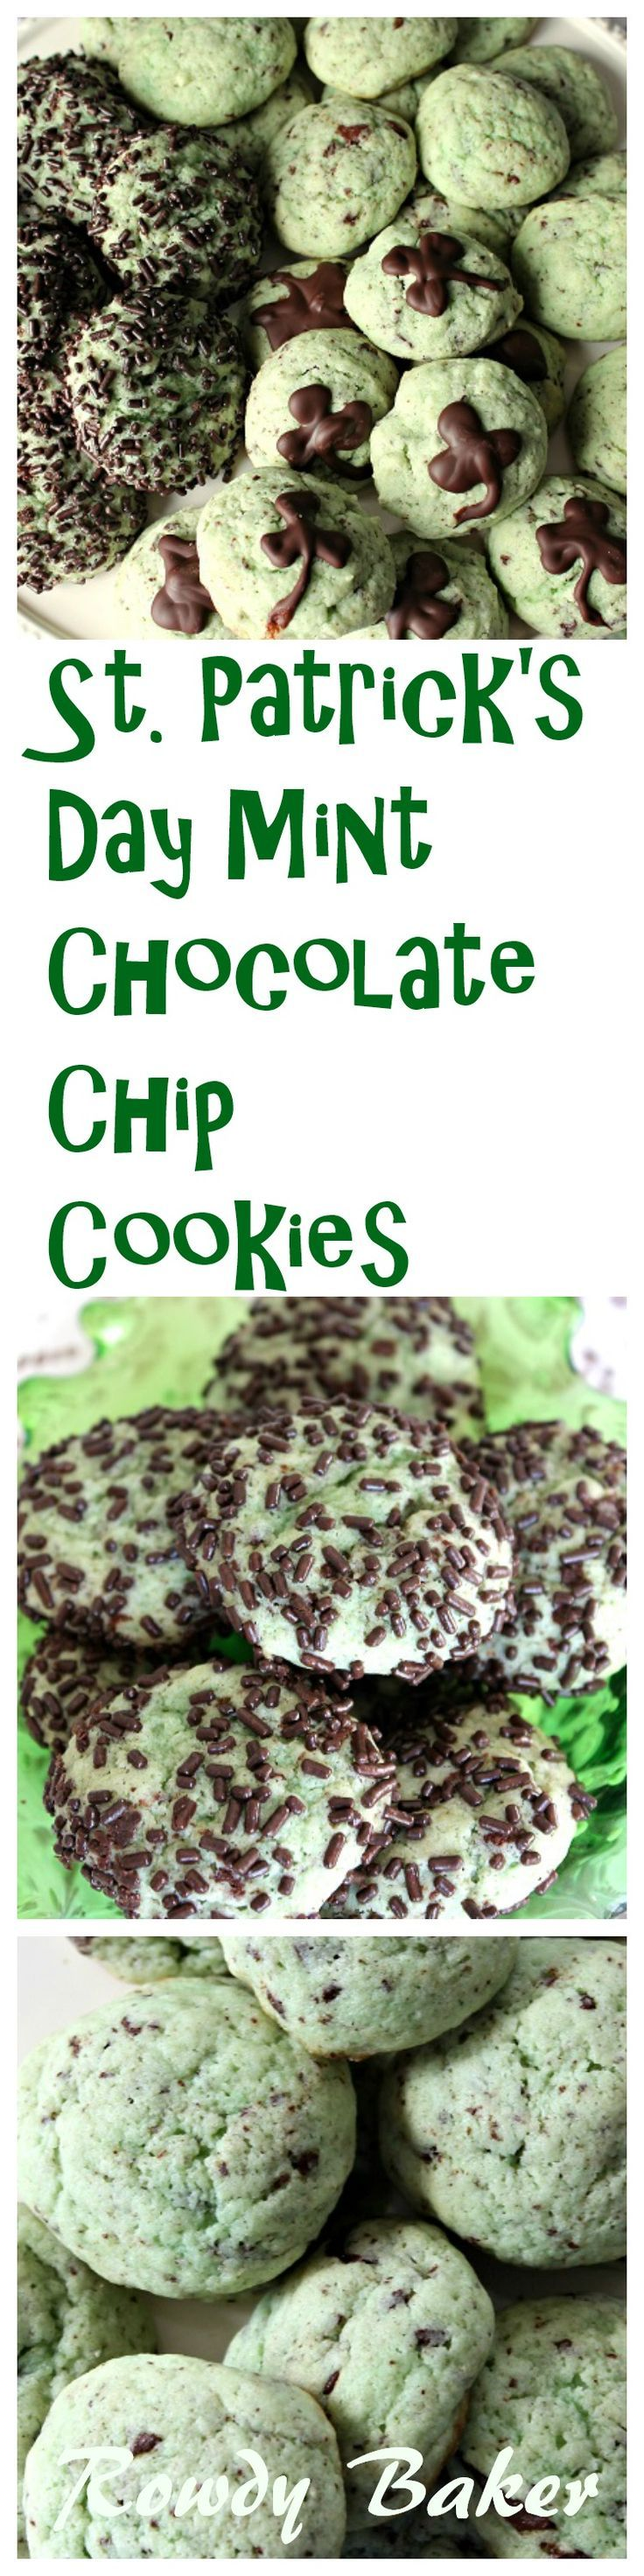 St. Patrick's Day Mint Chocolate Chip Cookies! Light and airy, these cake-like cookies will melt in your mouth! The peppermint schnapps gives thecookie a subtle mint flavor (you can add a little peppermint extract if you want them mintier) and…